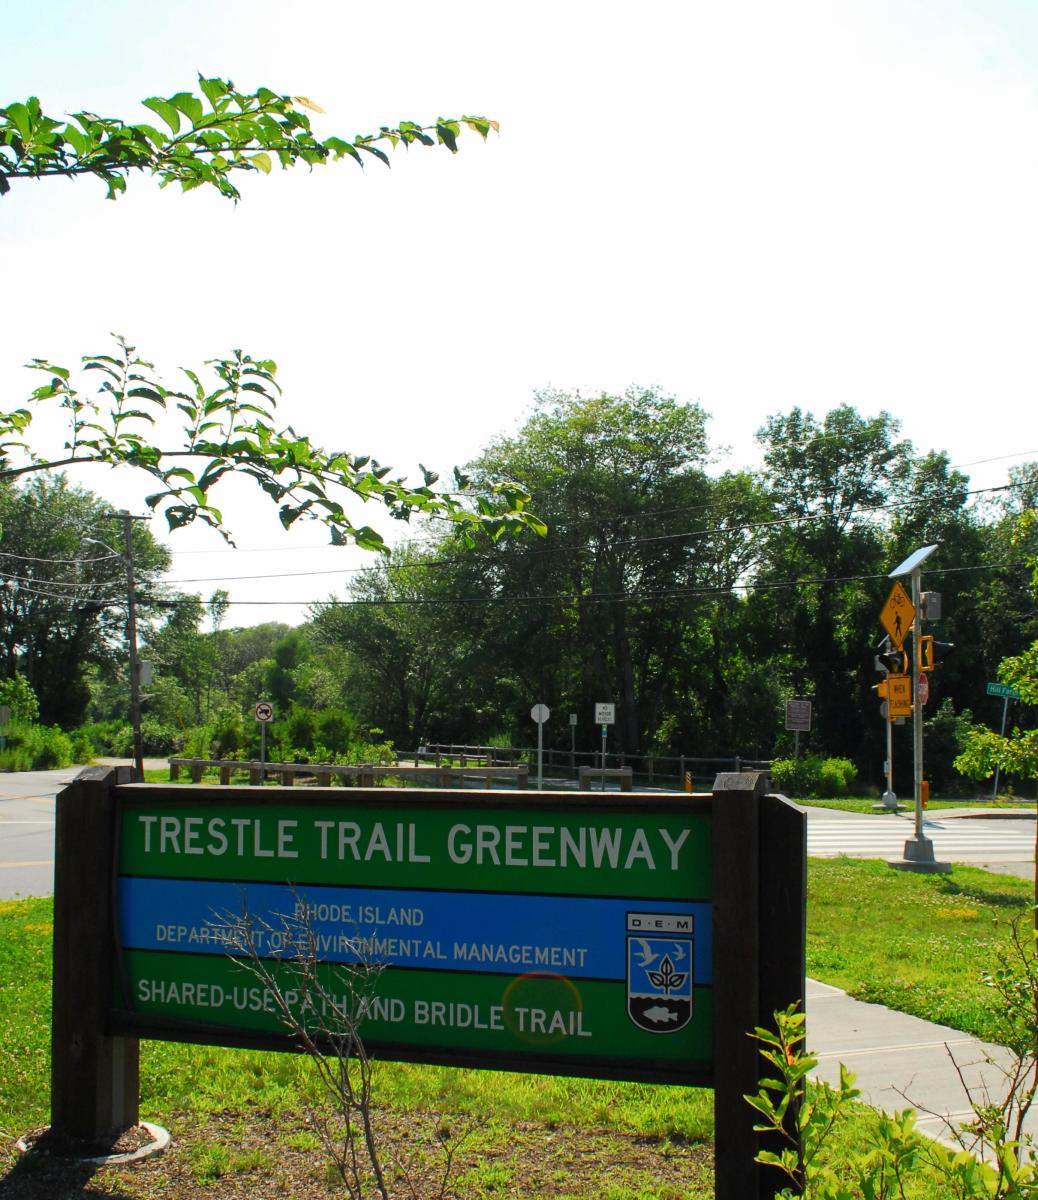 Coventry Greenway And Trestle Trail Coventry Ri 02816